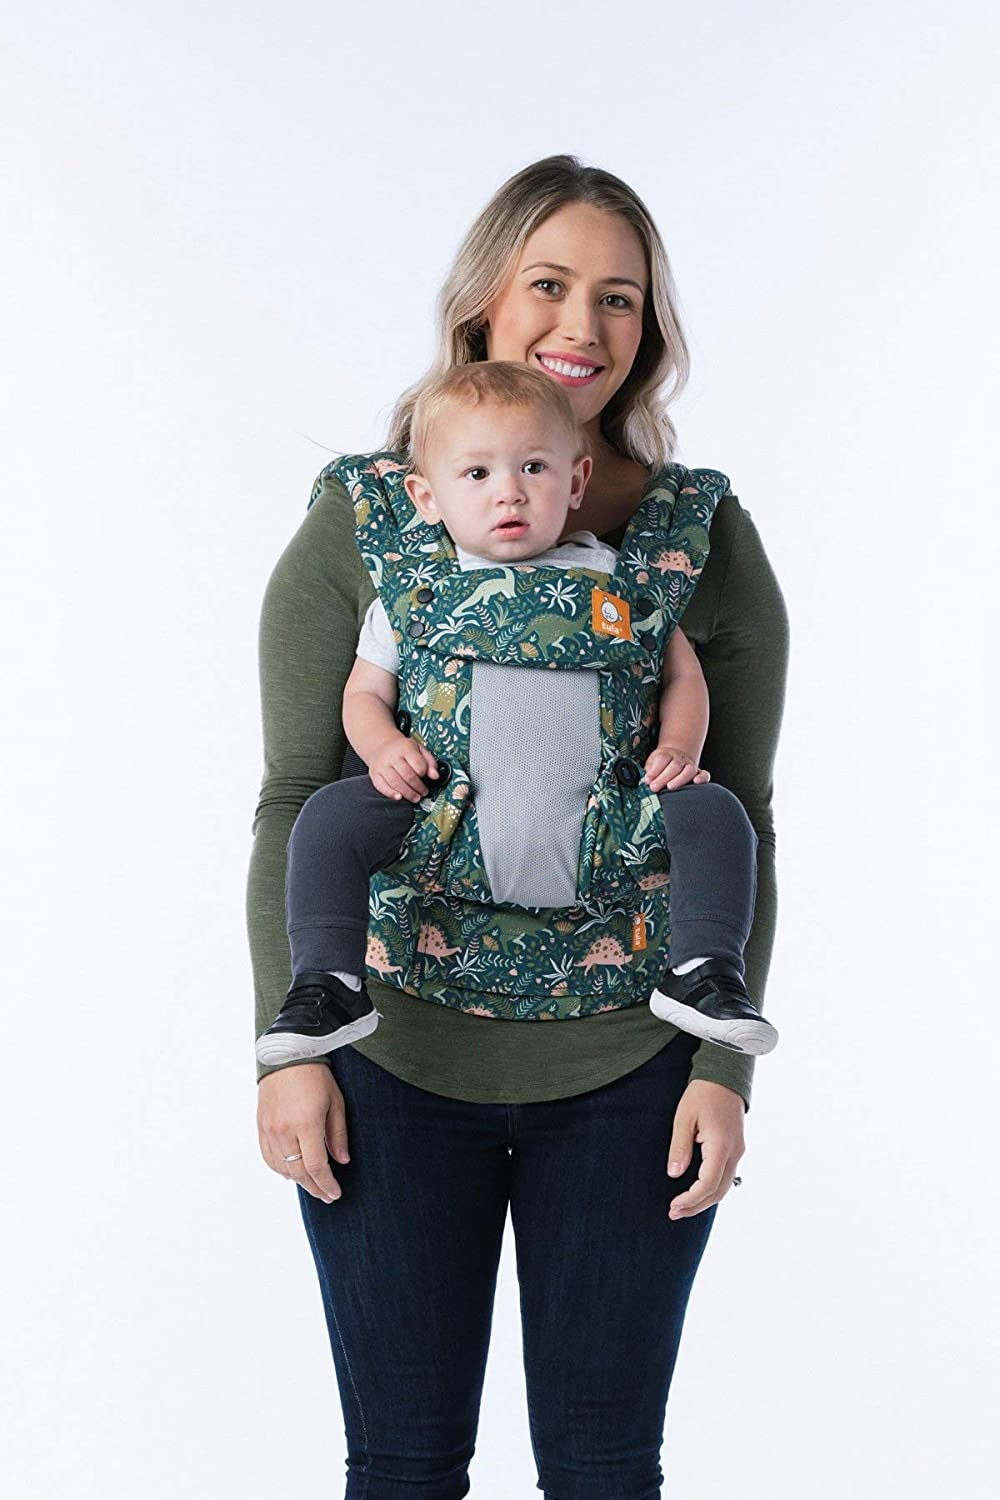 Multiple Ergonomic Positions Front//Back Coast Land Before Tula 20.4 kg Adjustable Newborn to Toddler Carrier Breathable Baby Tula Explore Mesh Baby Carrier 3.2